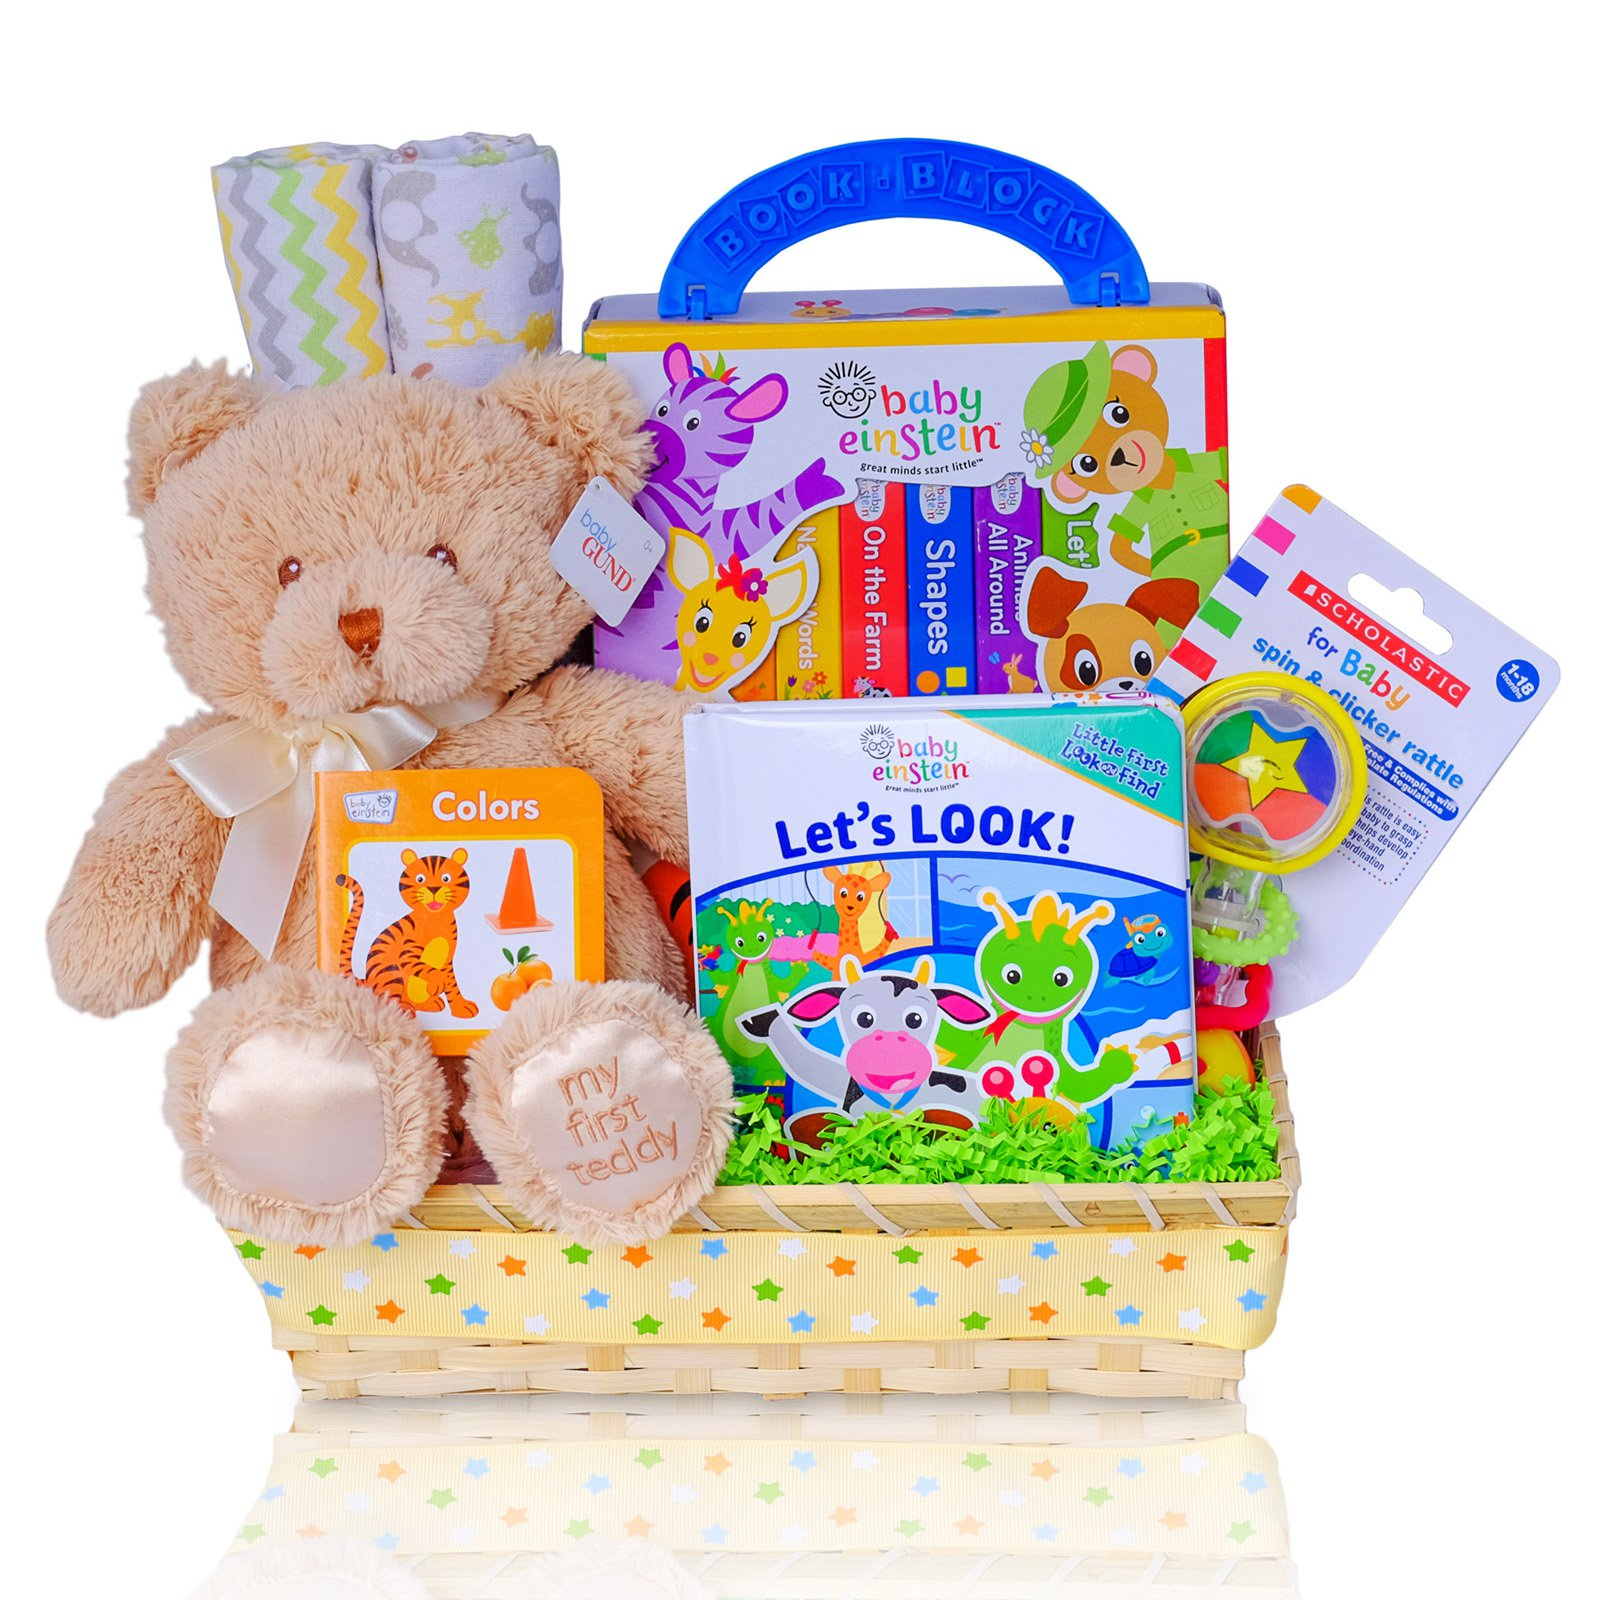 Cashmere Bunny Baby Einstein Read With Me Gift Basket by Cashmere Bunny